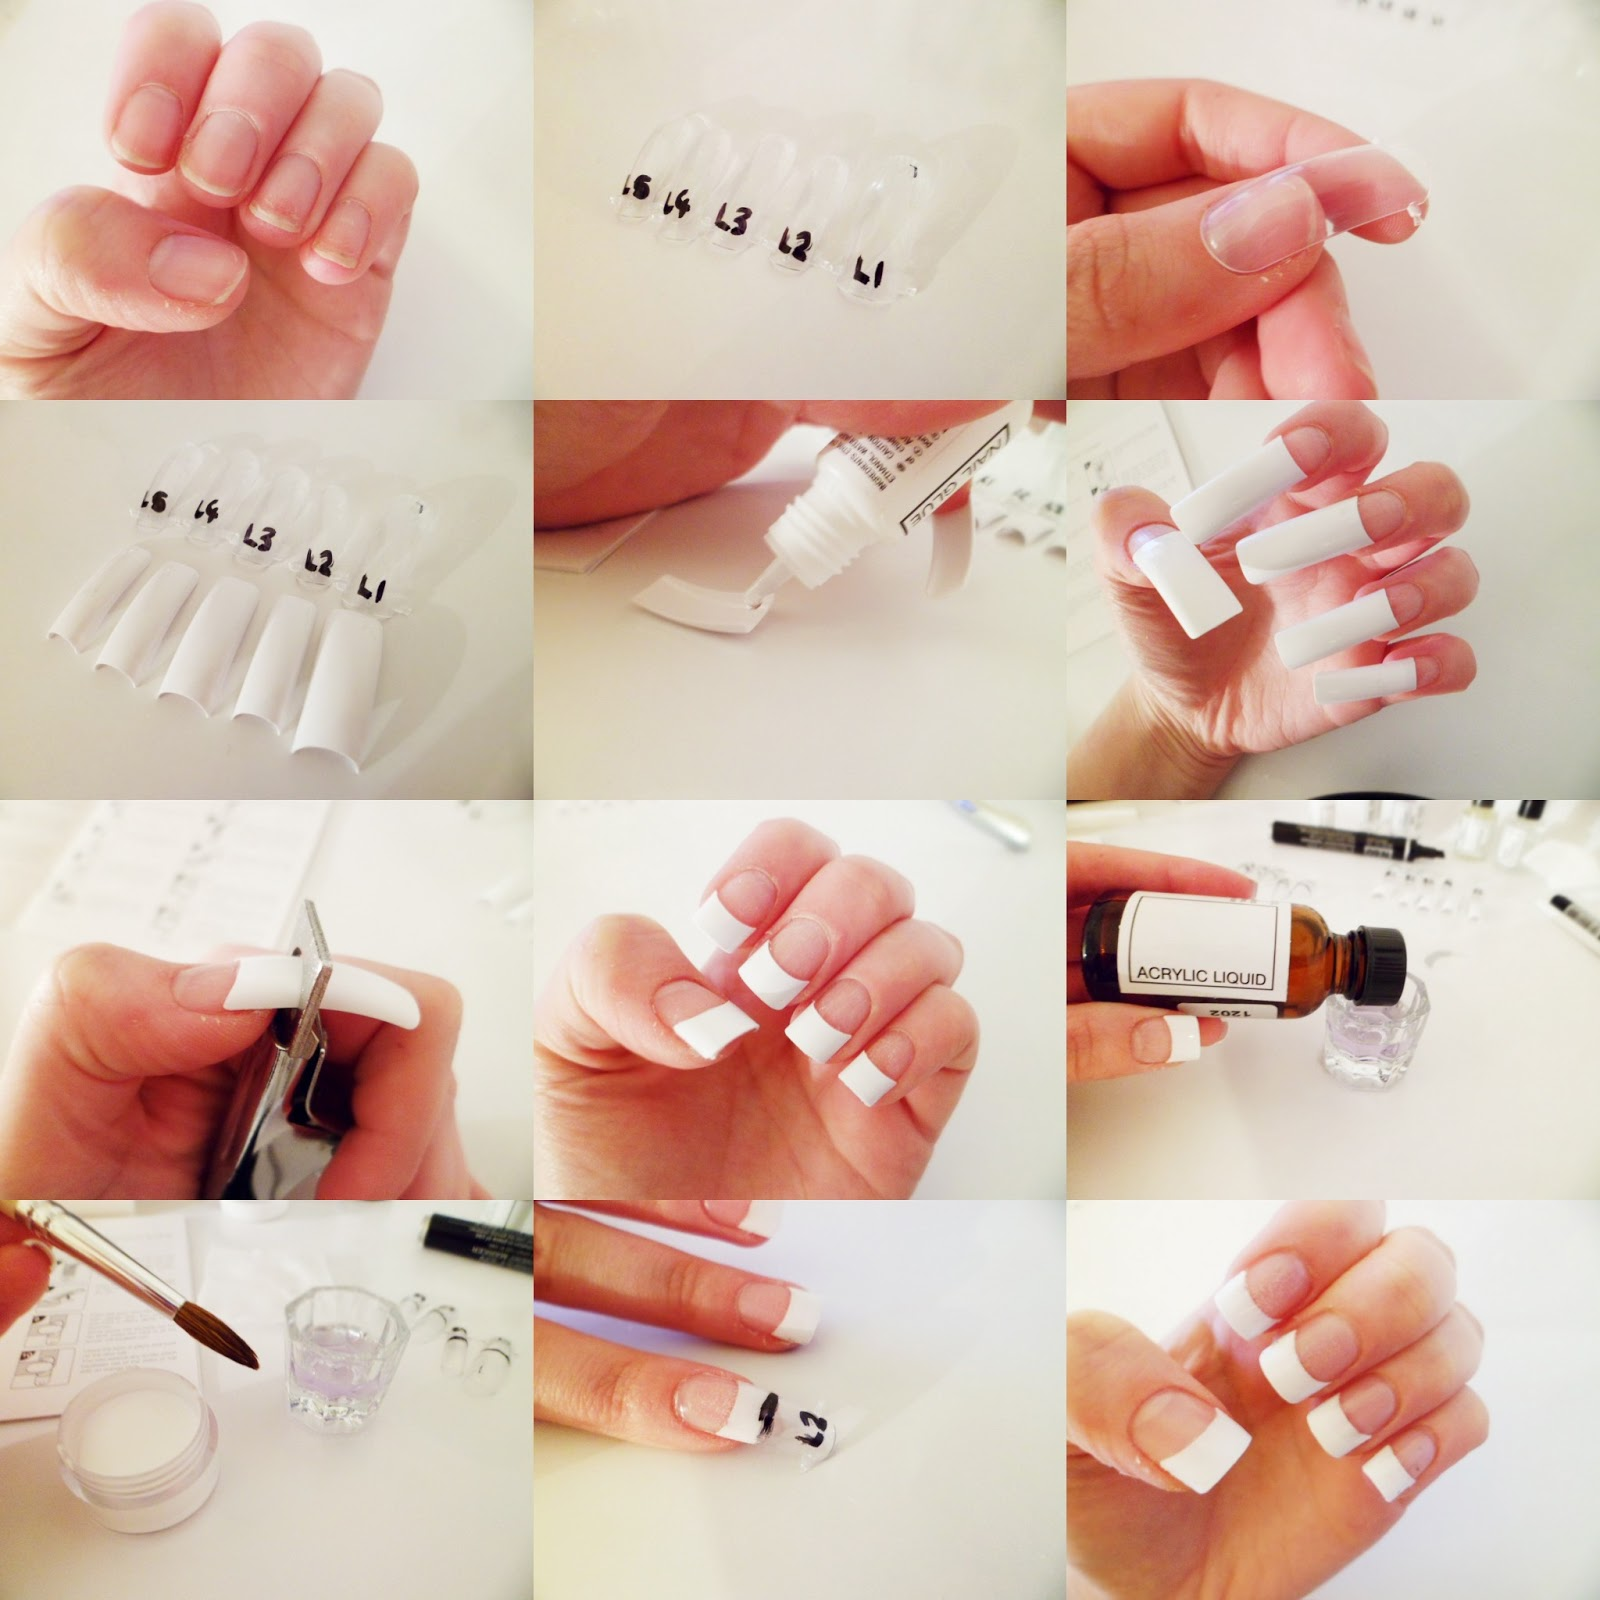 Do it yourself acrylic nails kit nails gallery do it yourself acrylic nails kit image solutioingenieria